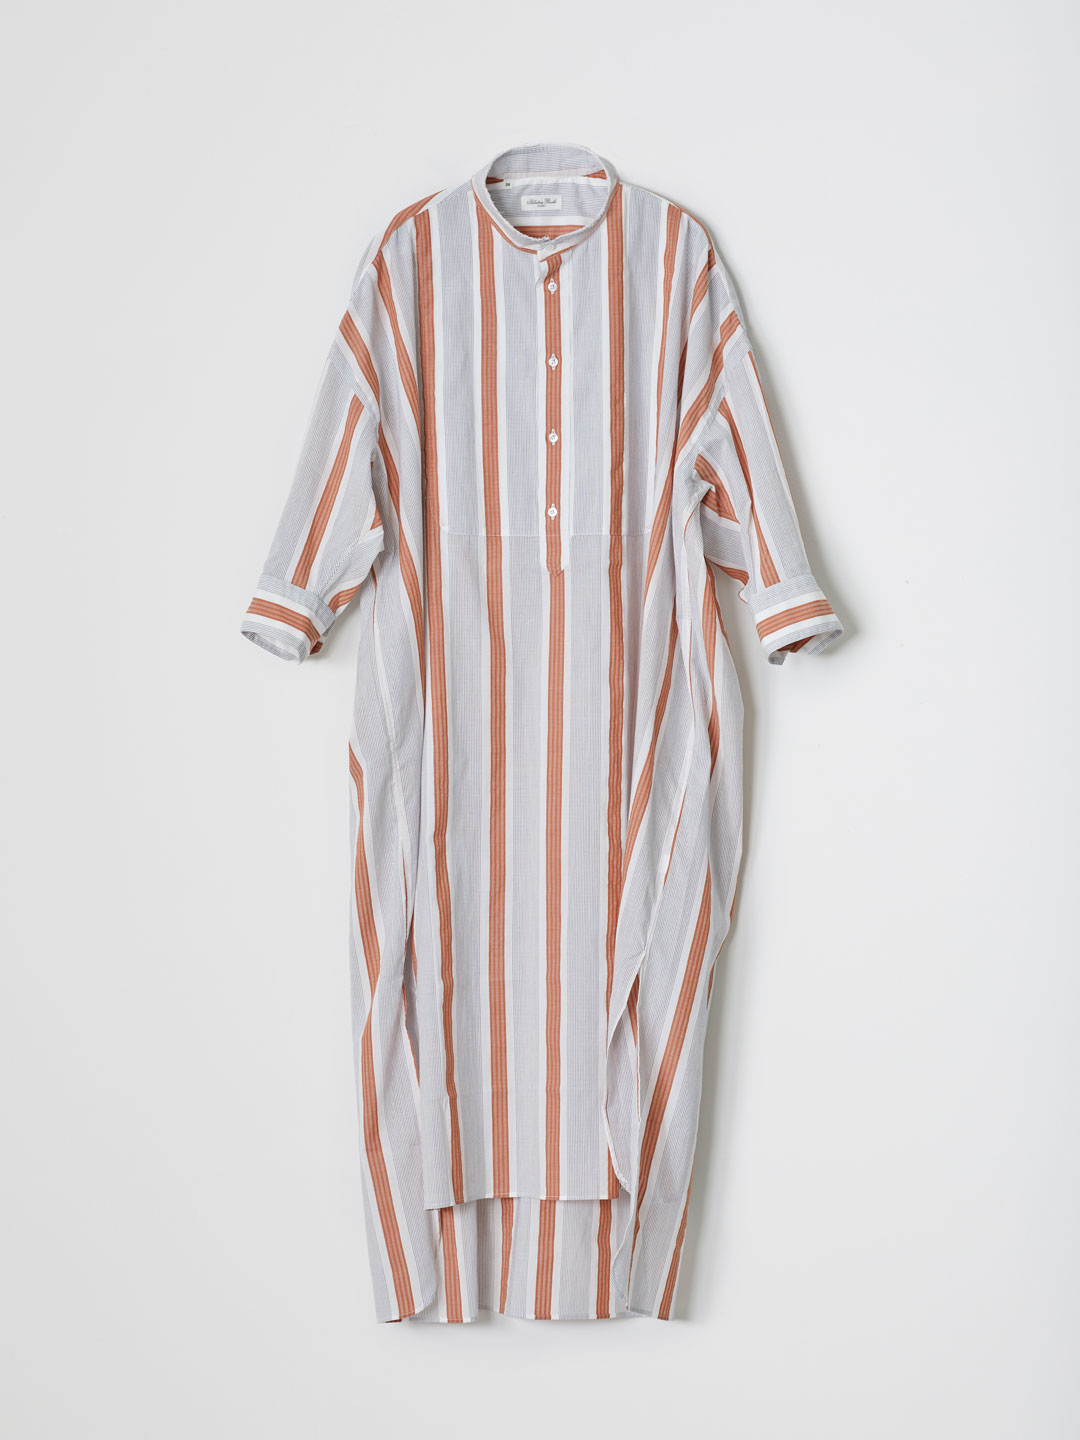 TINA3 SMOCKING Long Shirt - Multi